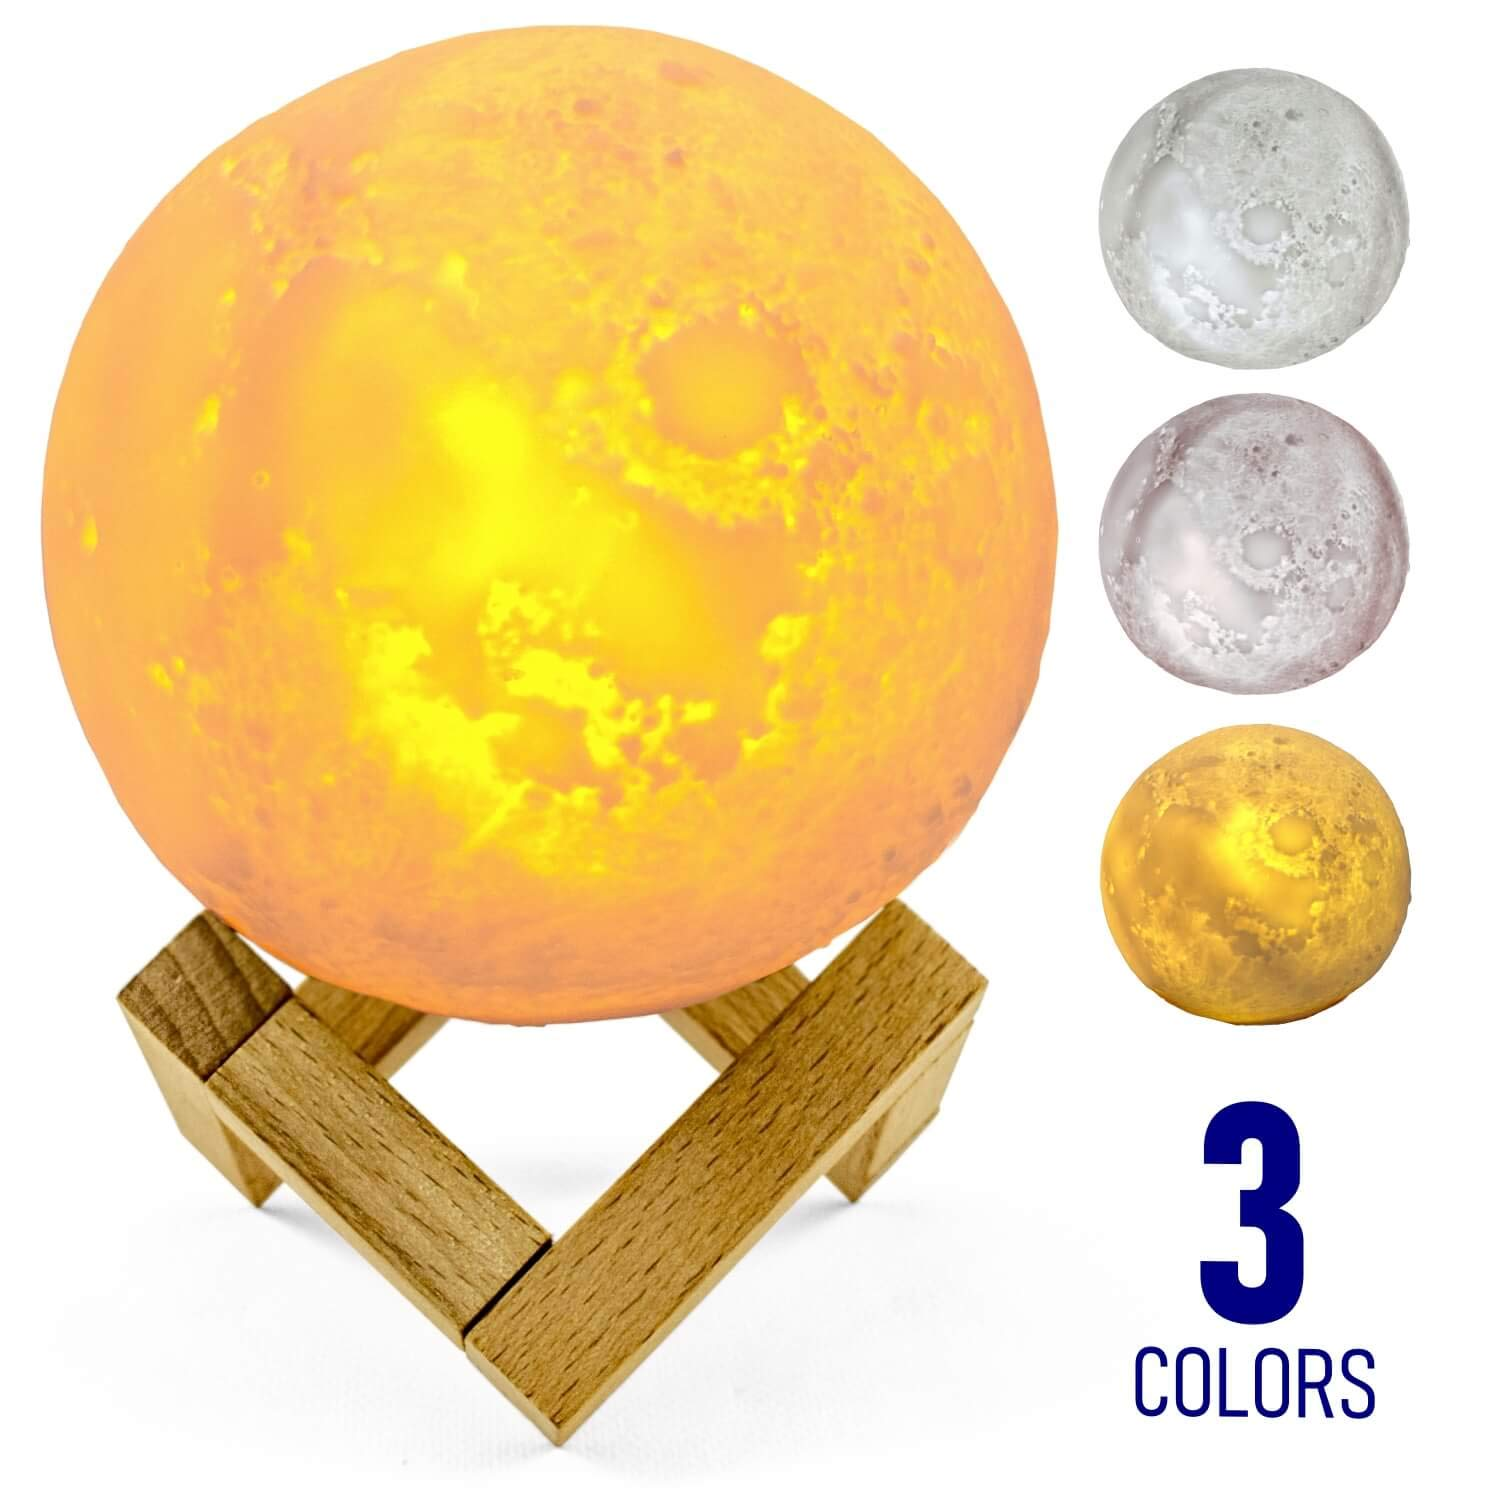 Eco Friendly 4.9 inch//13 cm 3D Moon Lamp with Stand USB Touch Control Realistic Moon Light with 16 Beautiful Colors Changing Bedroom 4.9 Kids Birthday Gift Perfect for Home Decor Remote Gobblen